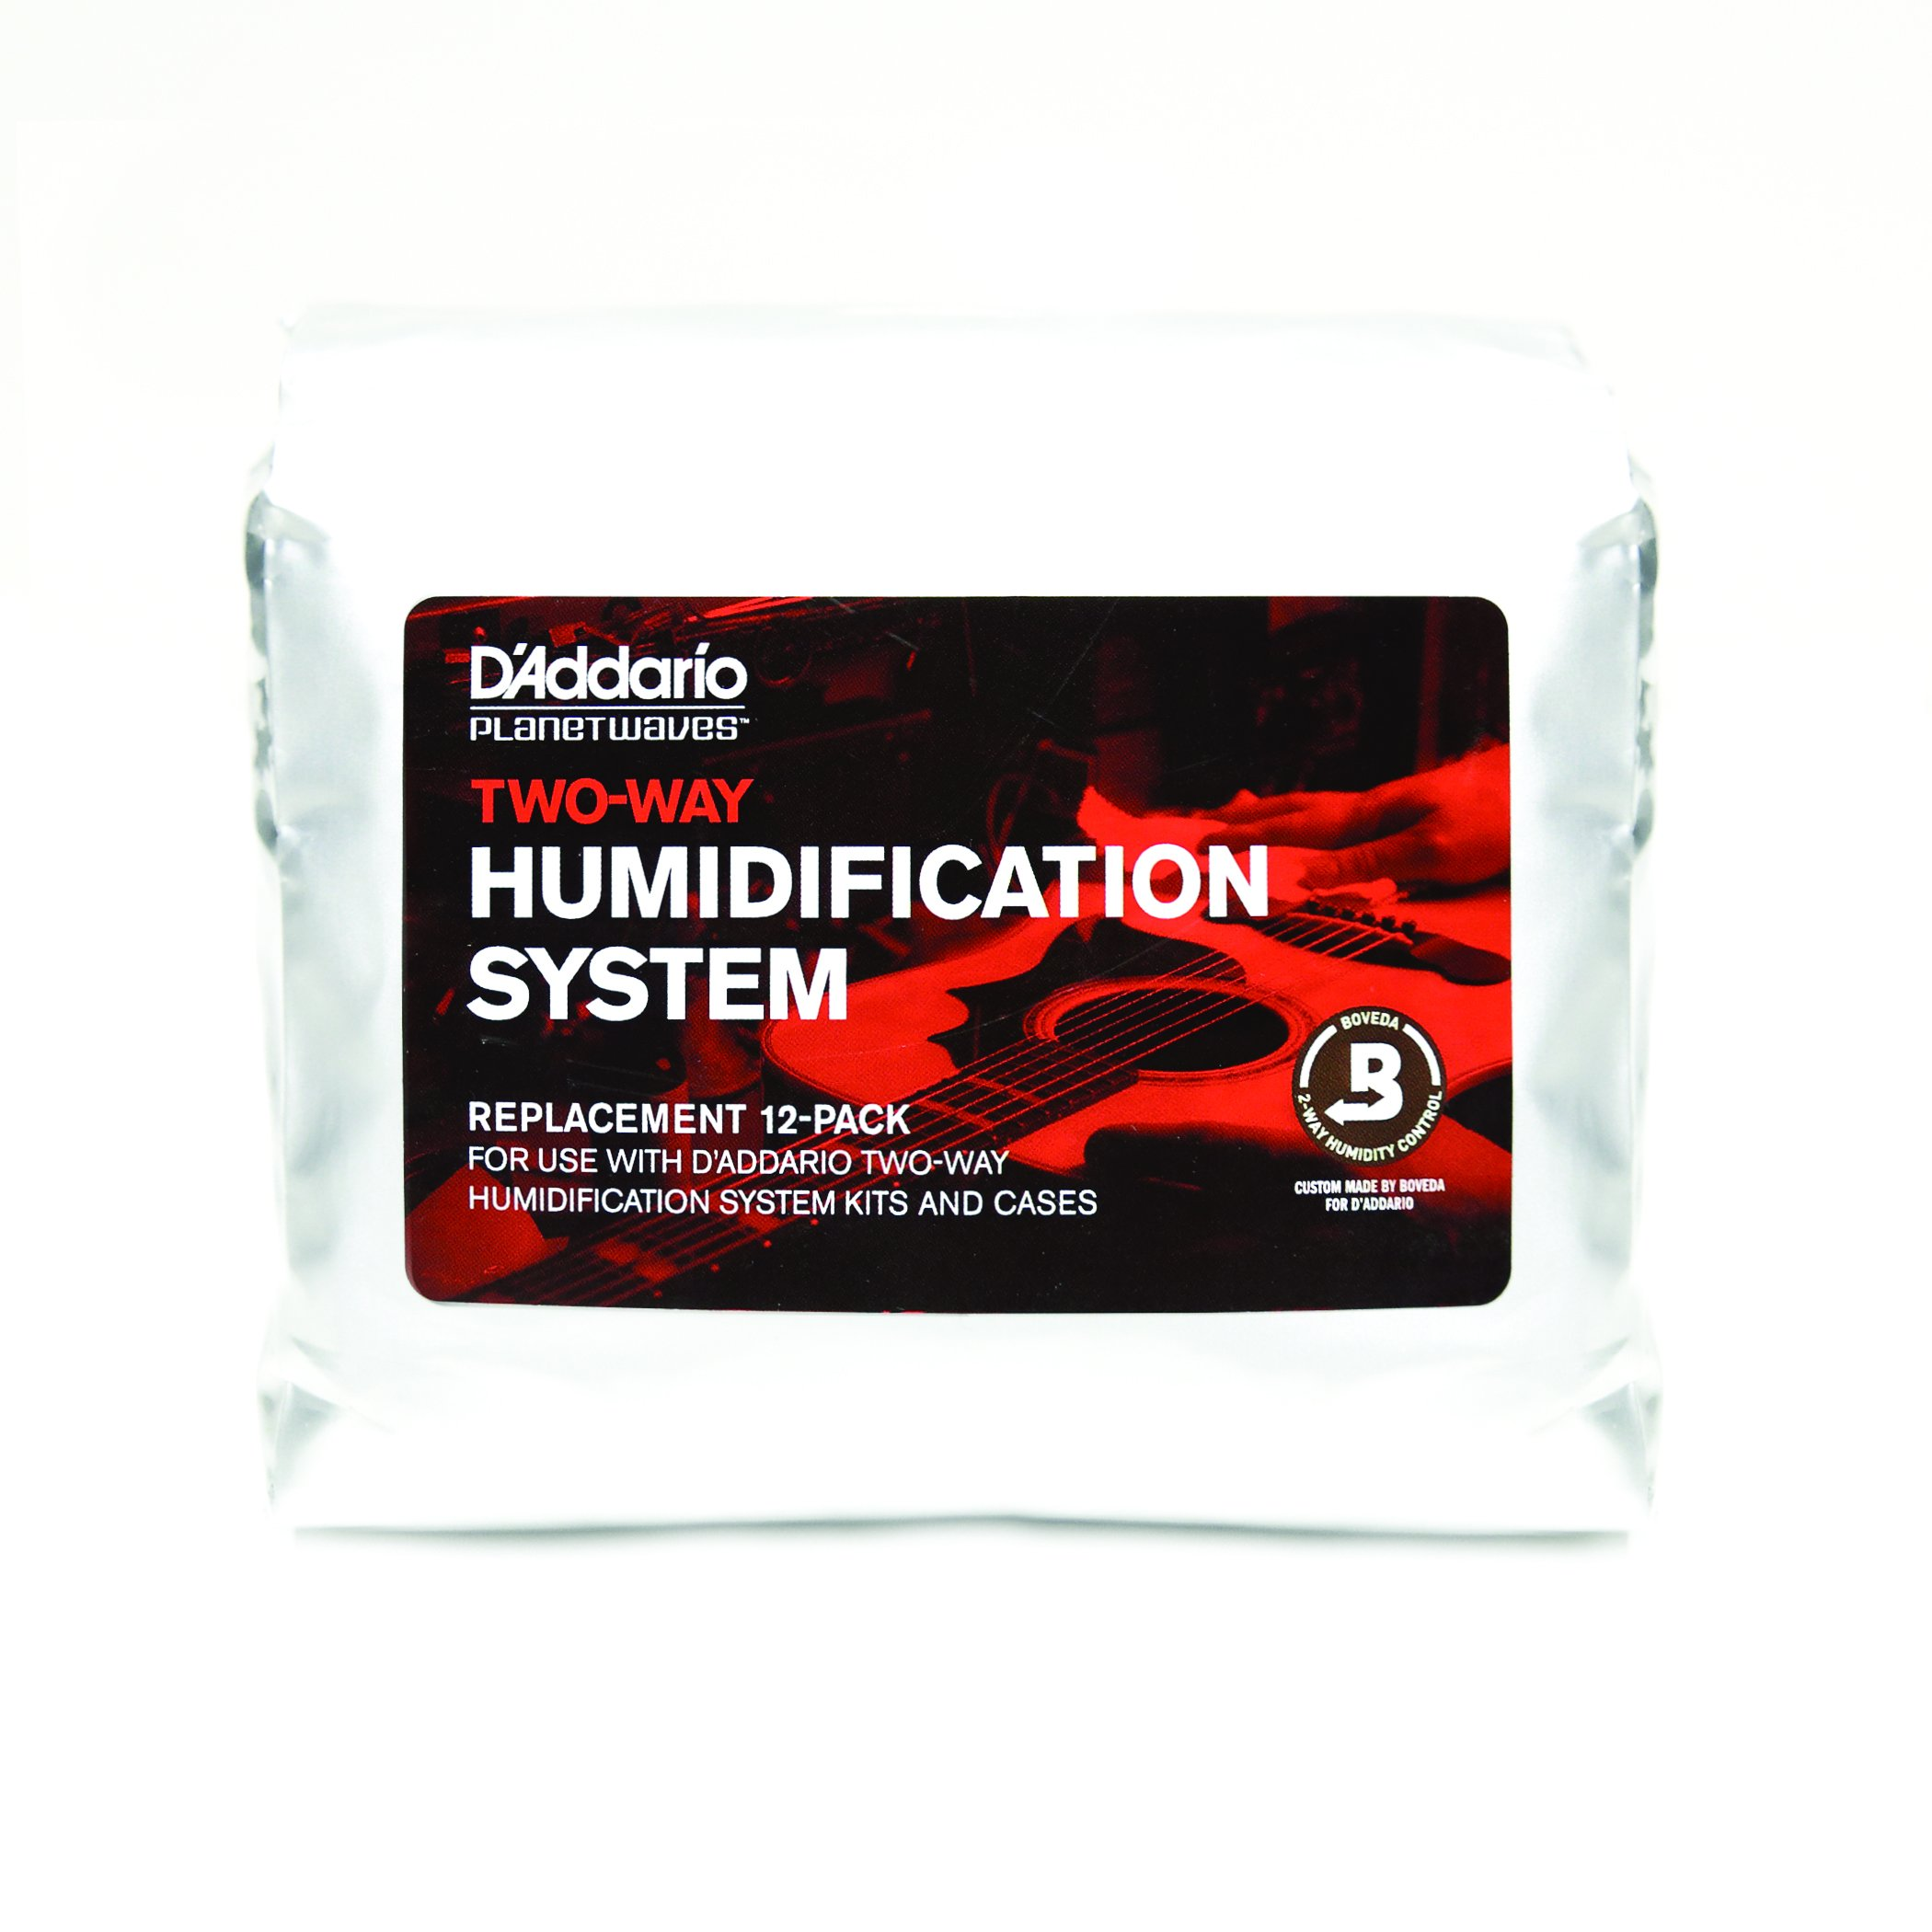 D'Addario Two-Way Humidification System Replacement Packets (12pk) – Automatically Adjusts to Maintain Ideal Humidity Level Within Guitar Case – Protects Instrument from Humidity Damage, Mess Free